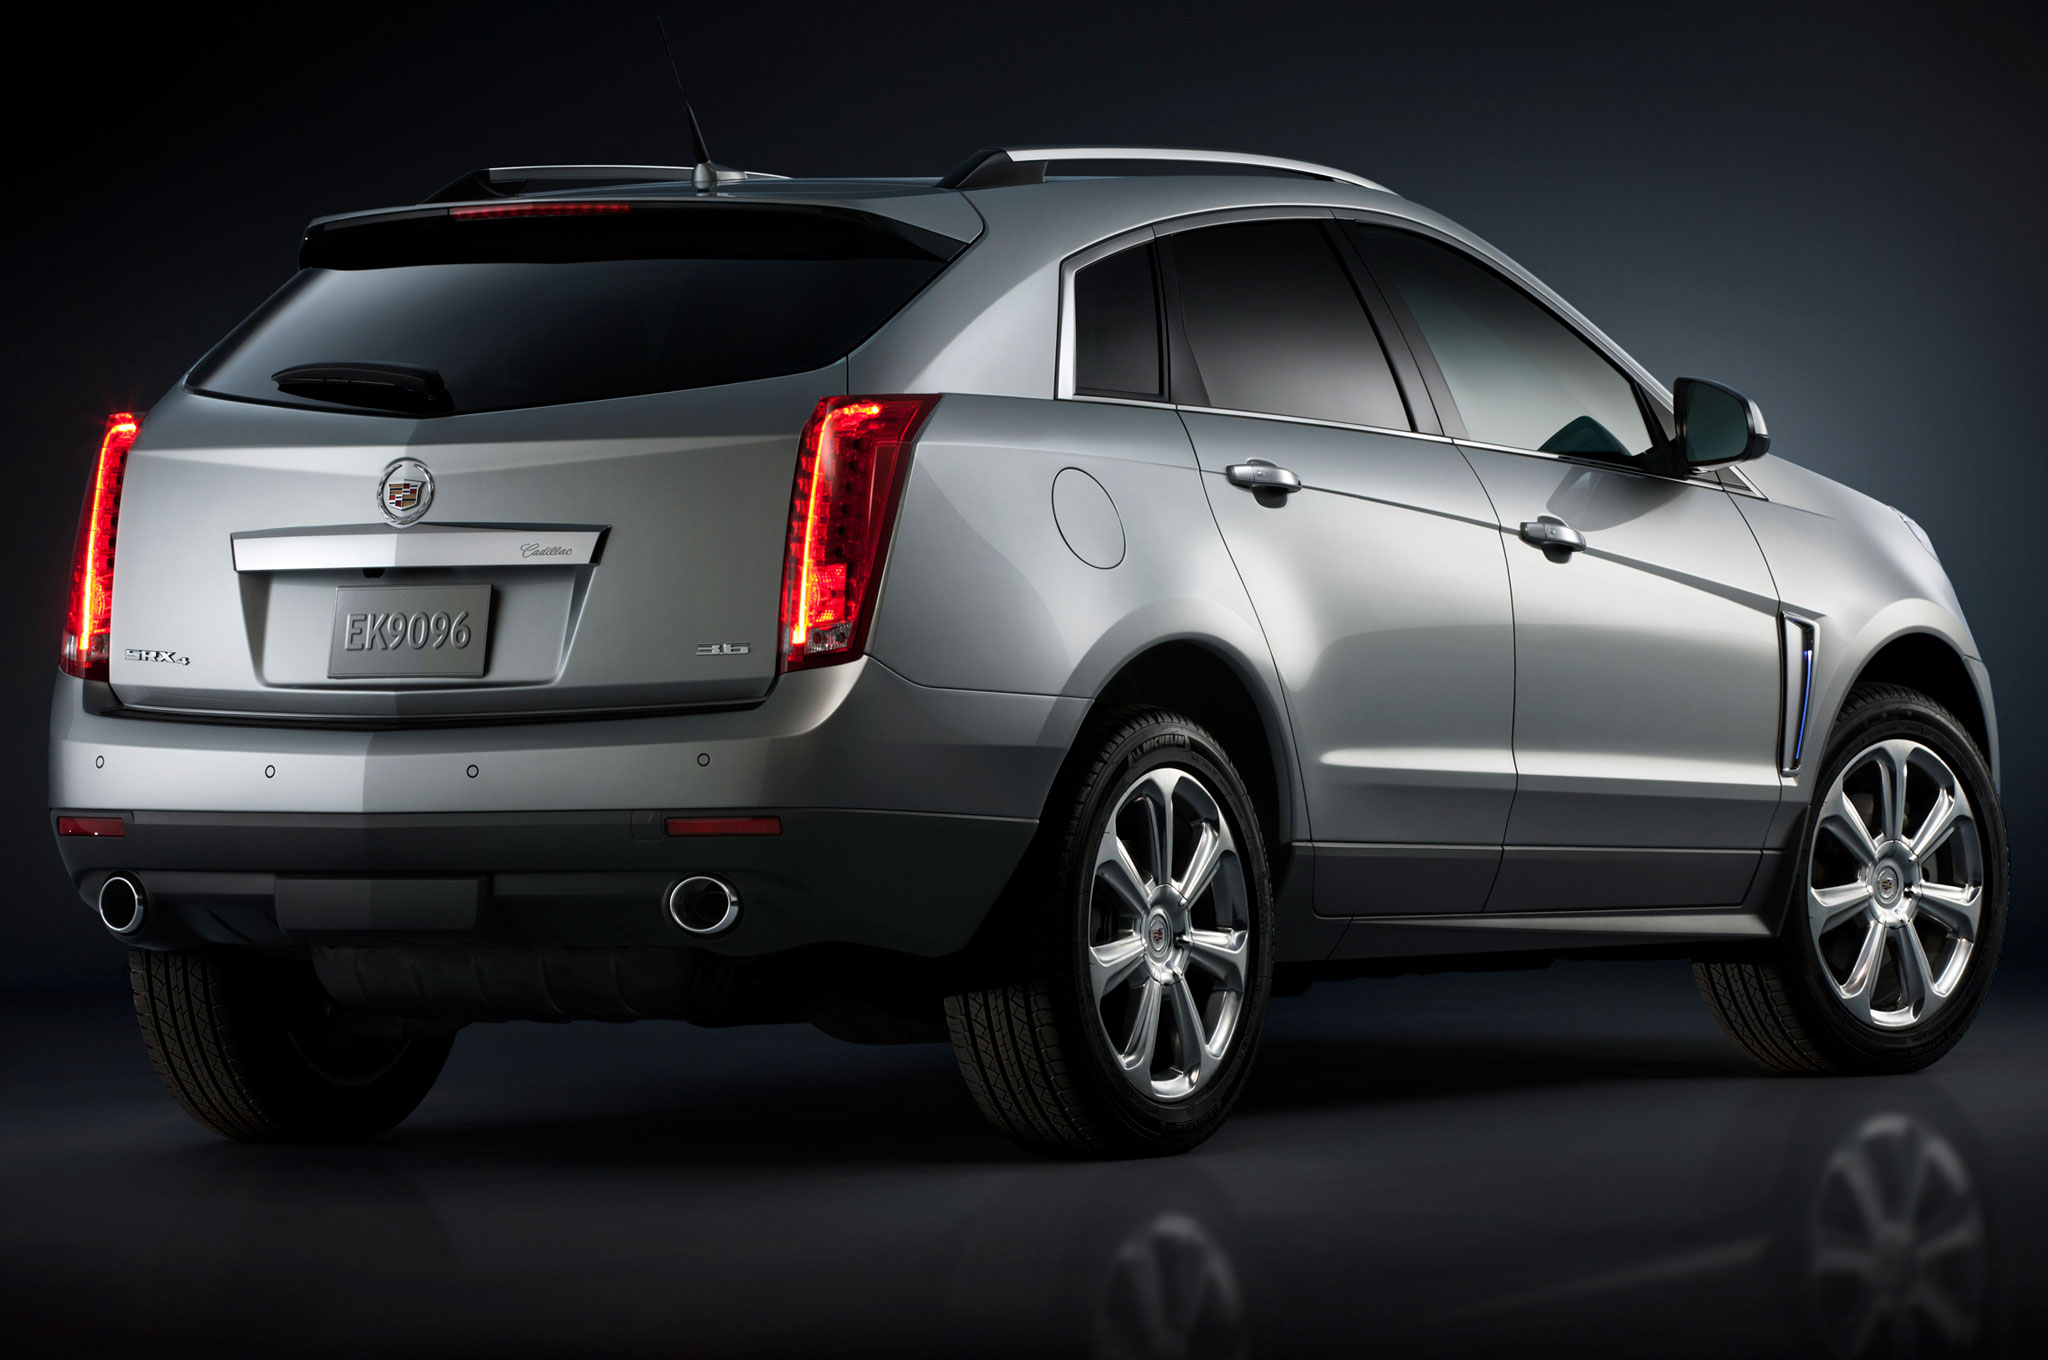 2014 cadillac srx ii pictures information and specs auto. Black Bedroom Furniture Sets. Home Design Ideas